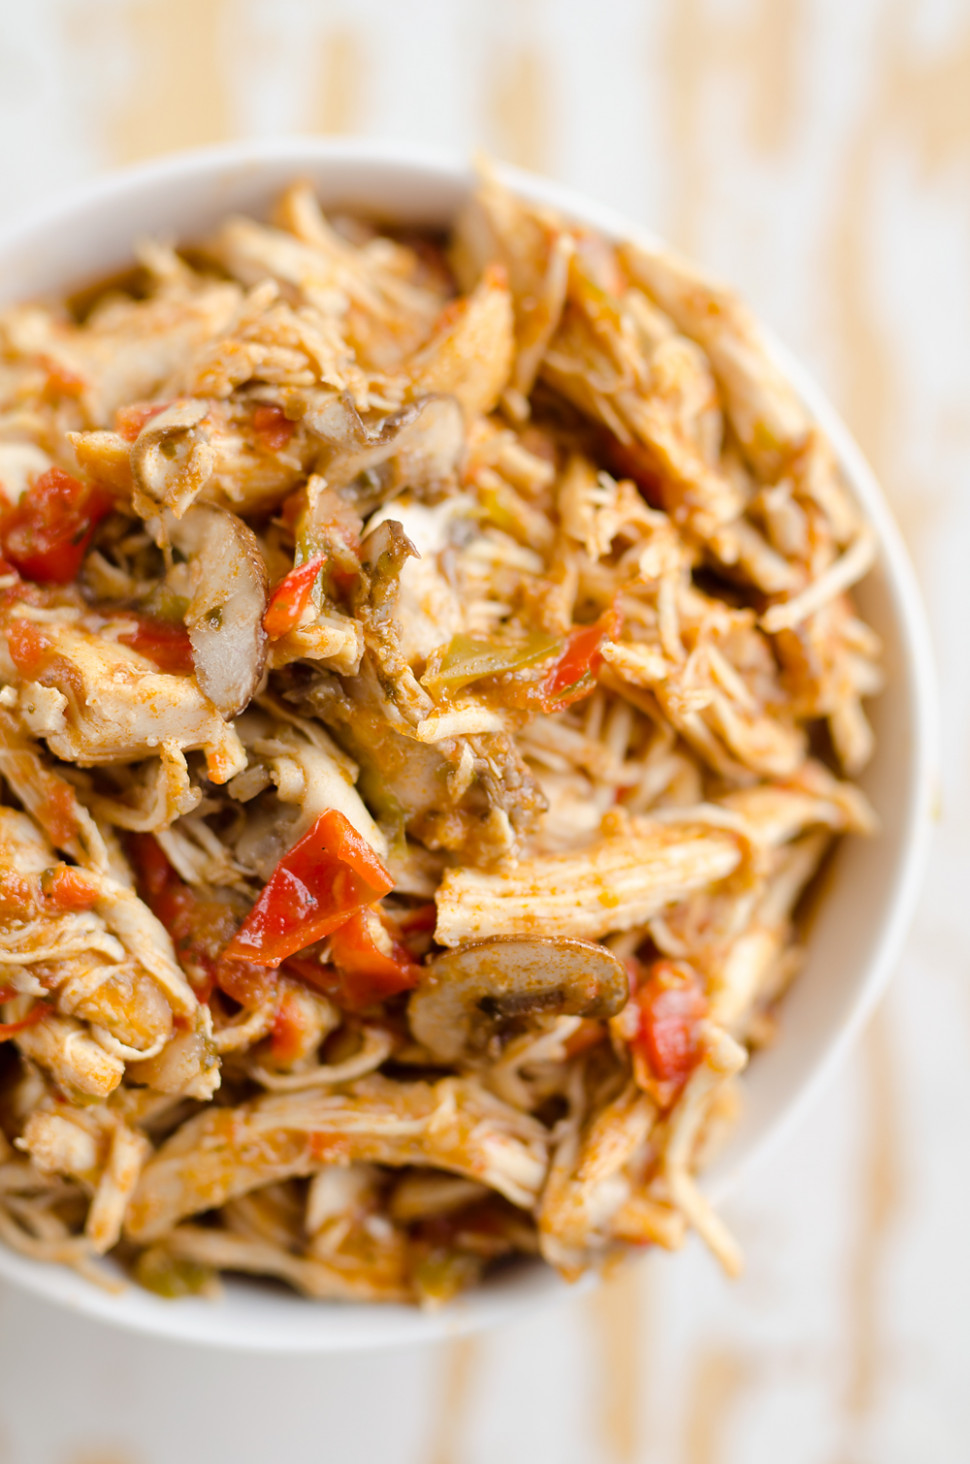 10 Healthy Chicken Recipes in a Pressure Cooker or Crock Pot - healthy recipes with chicken